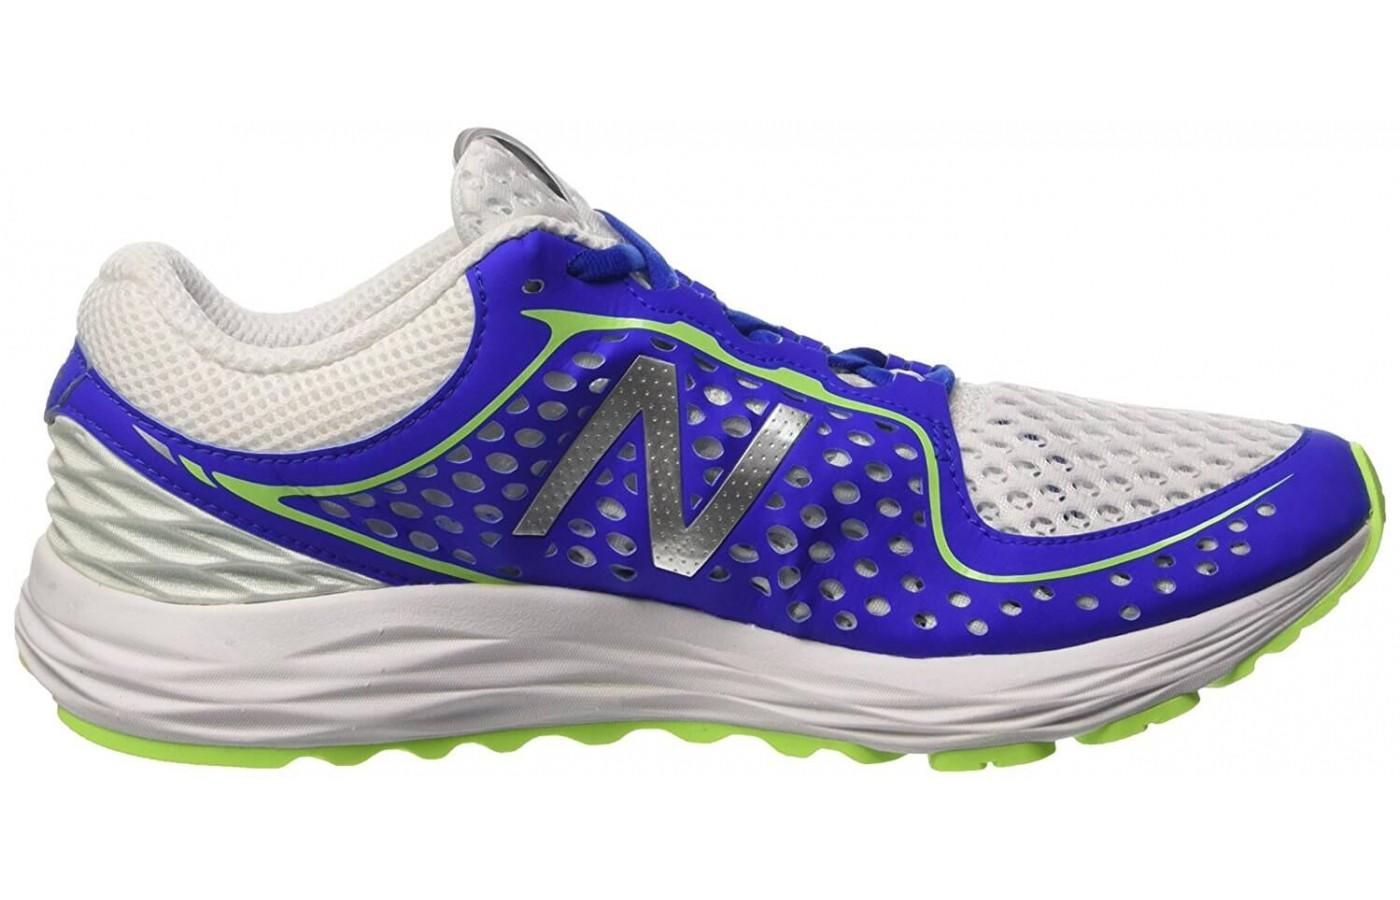 The responsive midsole of the New Balance Vazee Breathe.